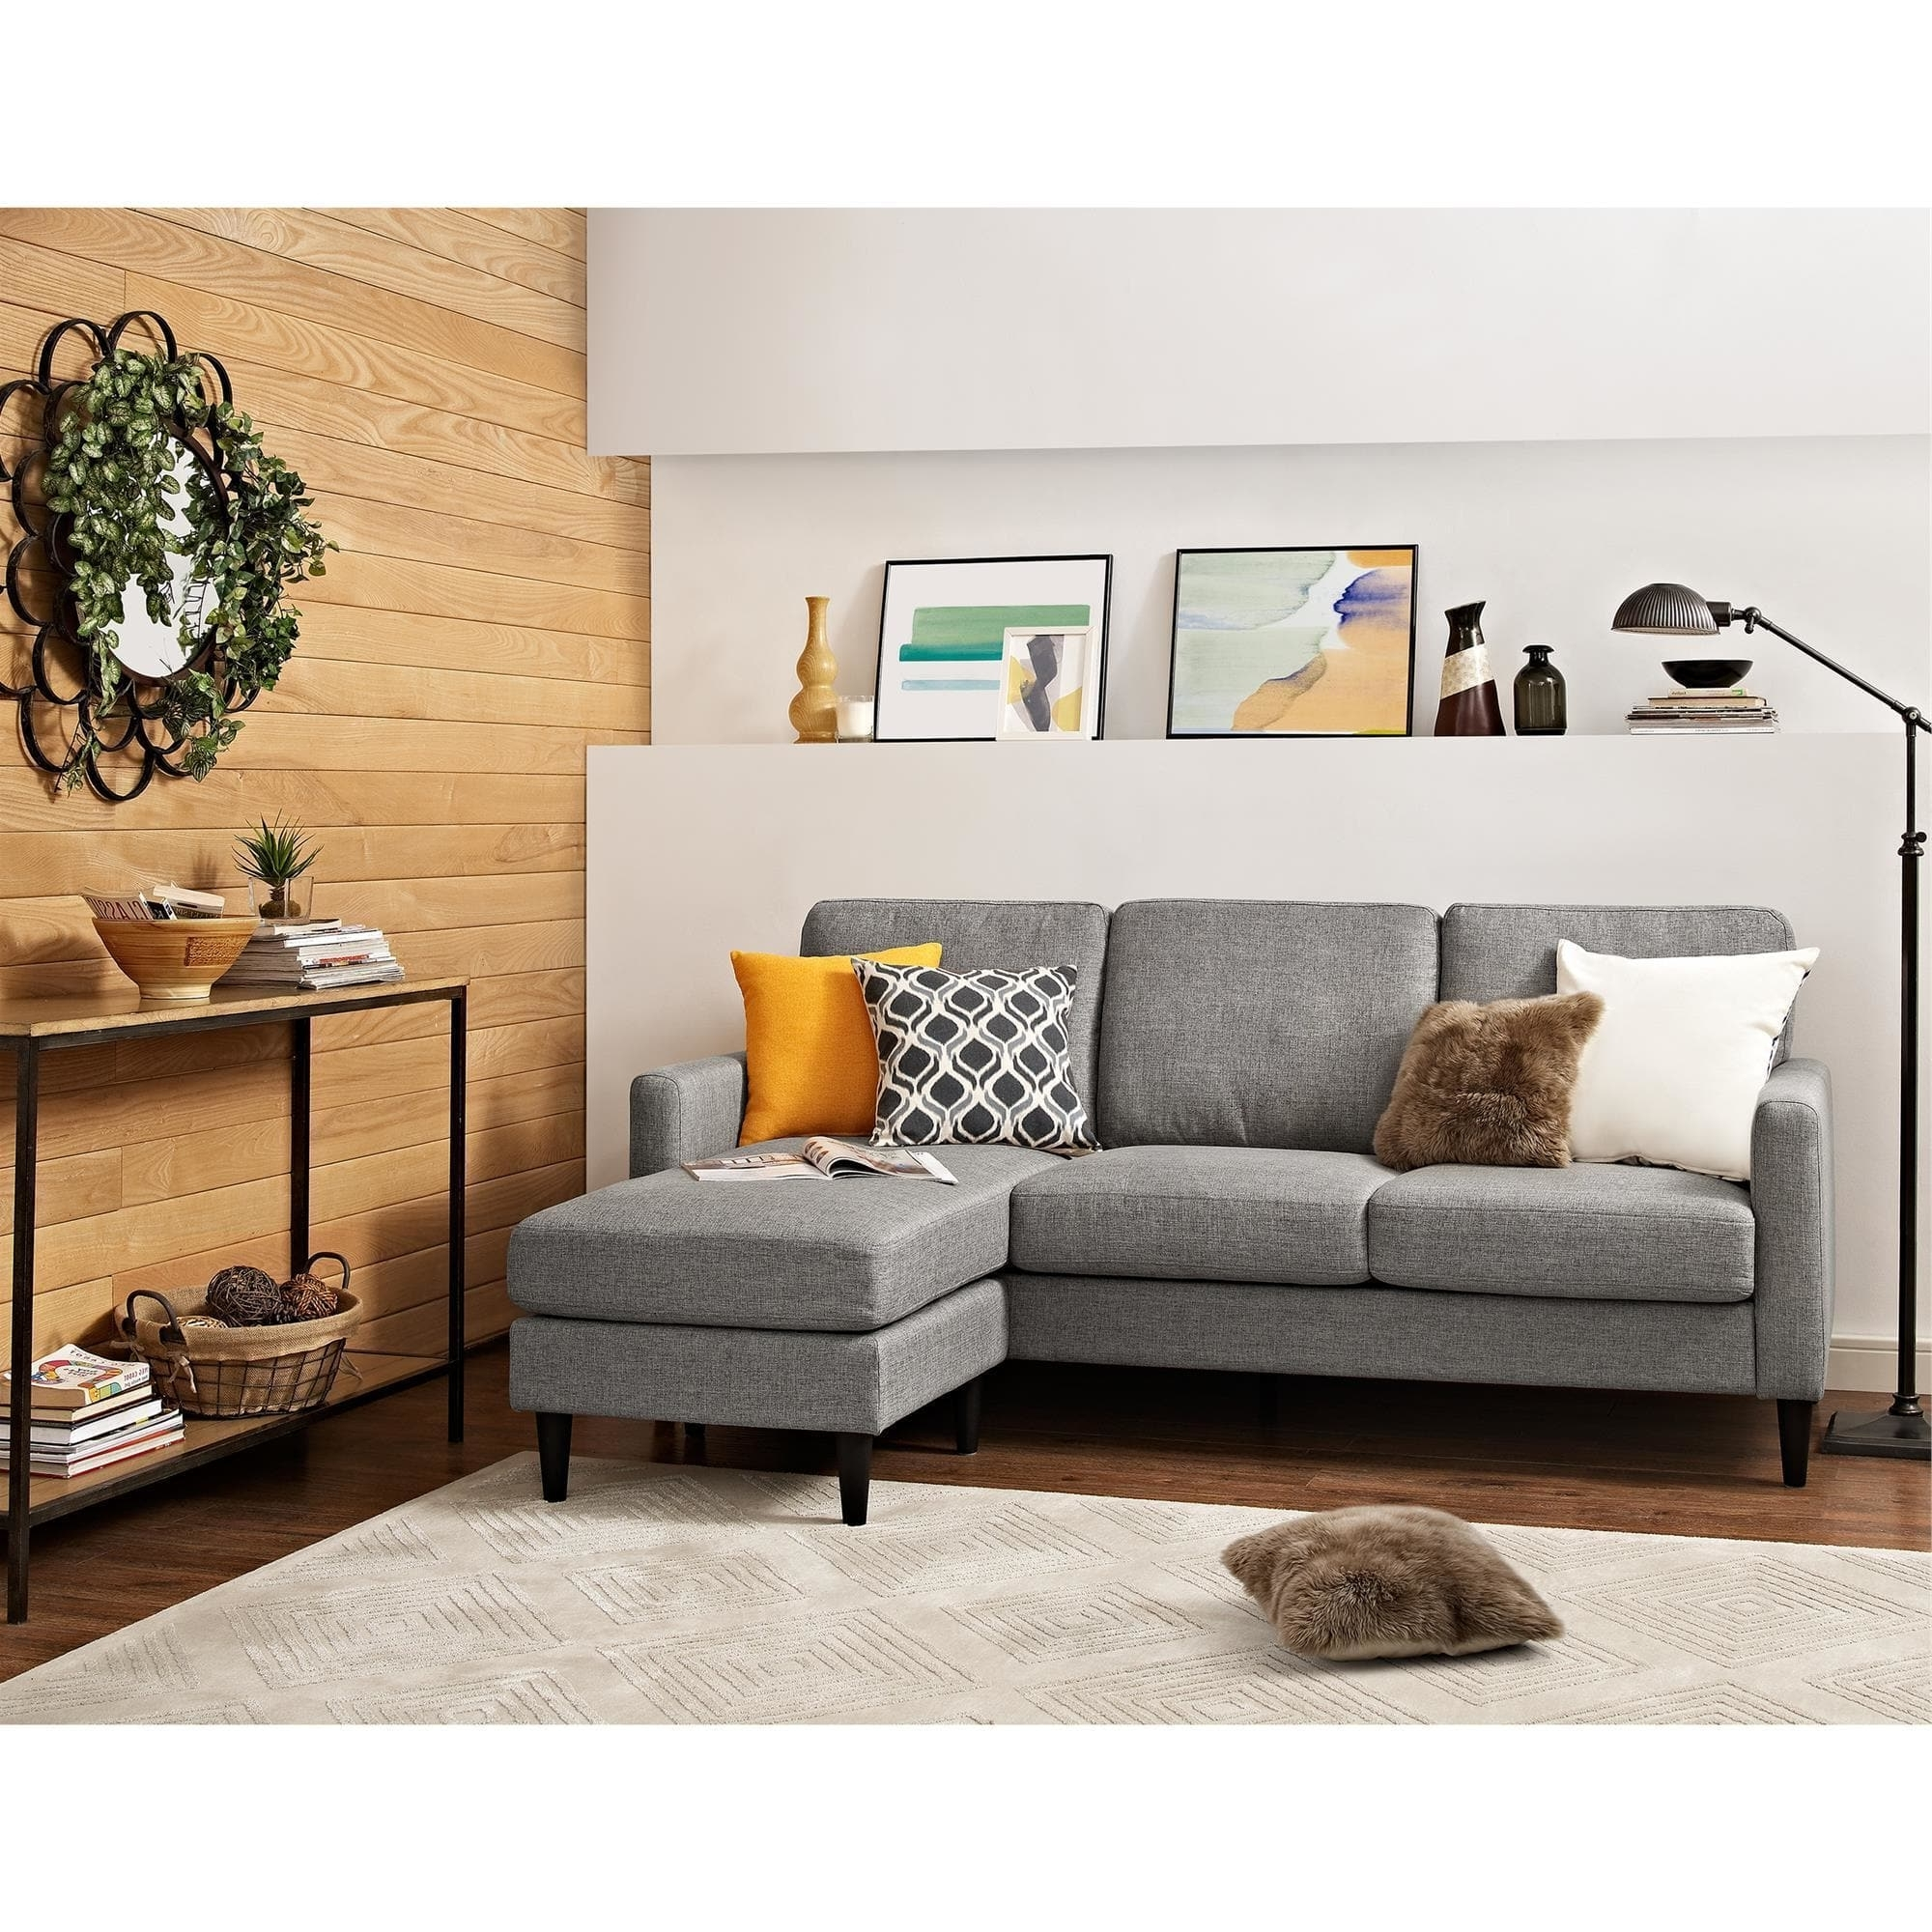 Well Liked Hawaii Sectional Sofas Inside Dorel Living Kaci Grey Sectional Sofa – Free Shipping On Orders (View 15 of 15)